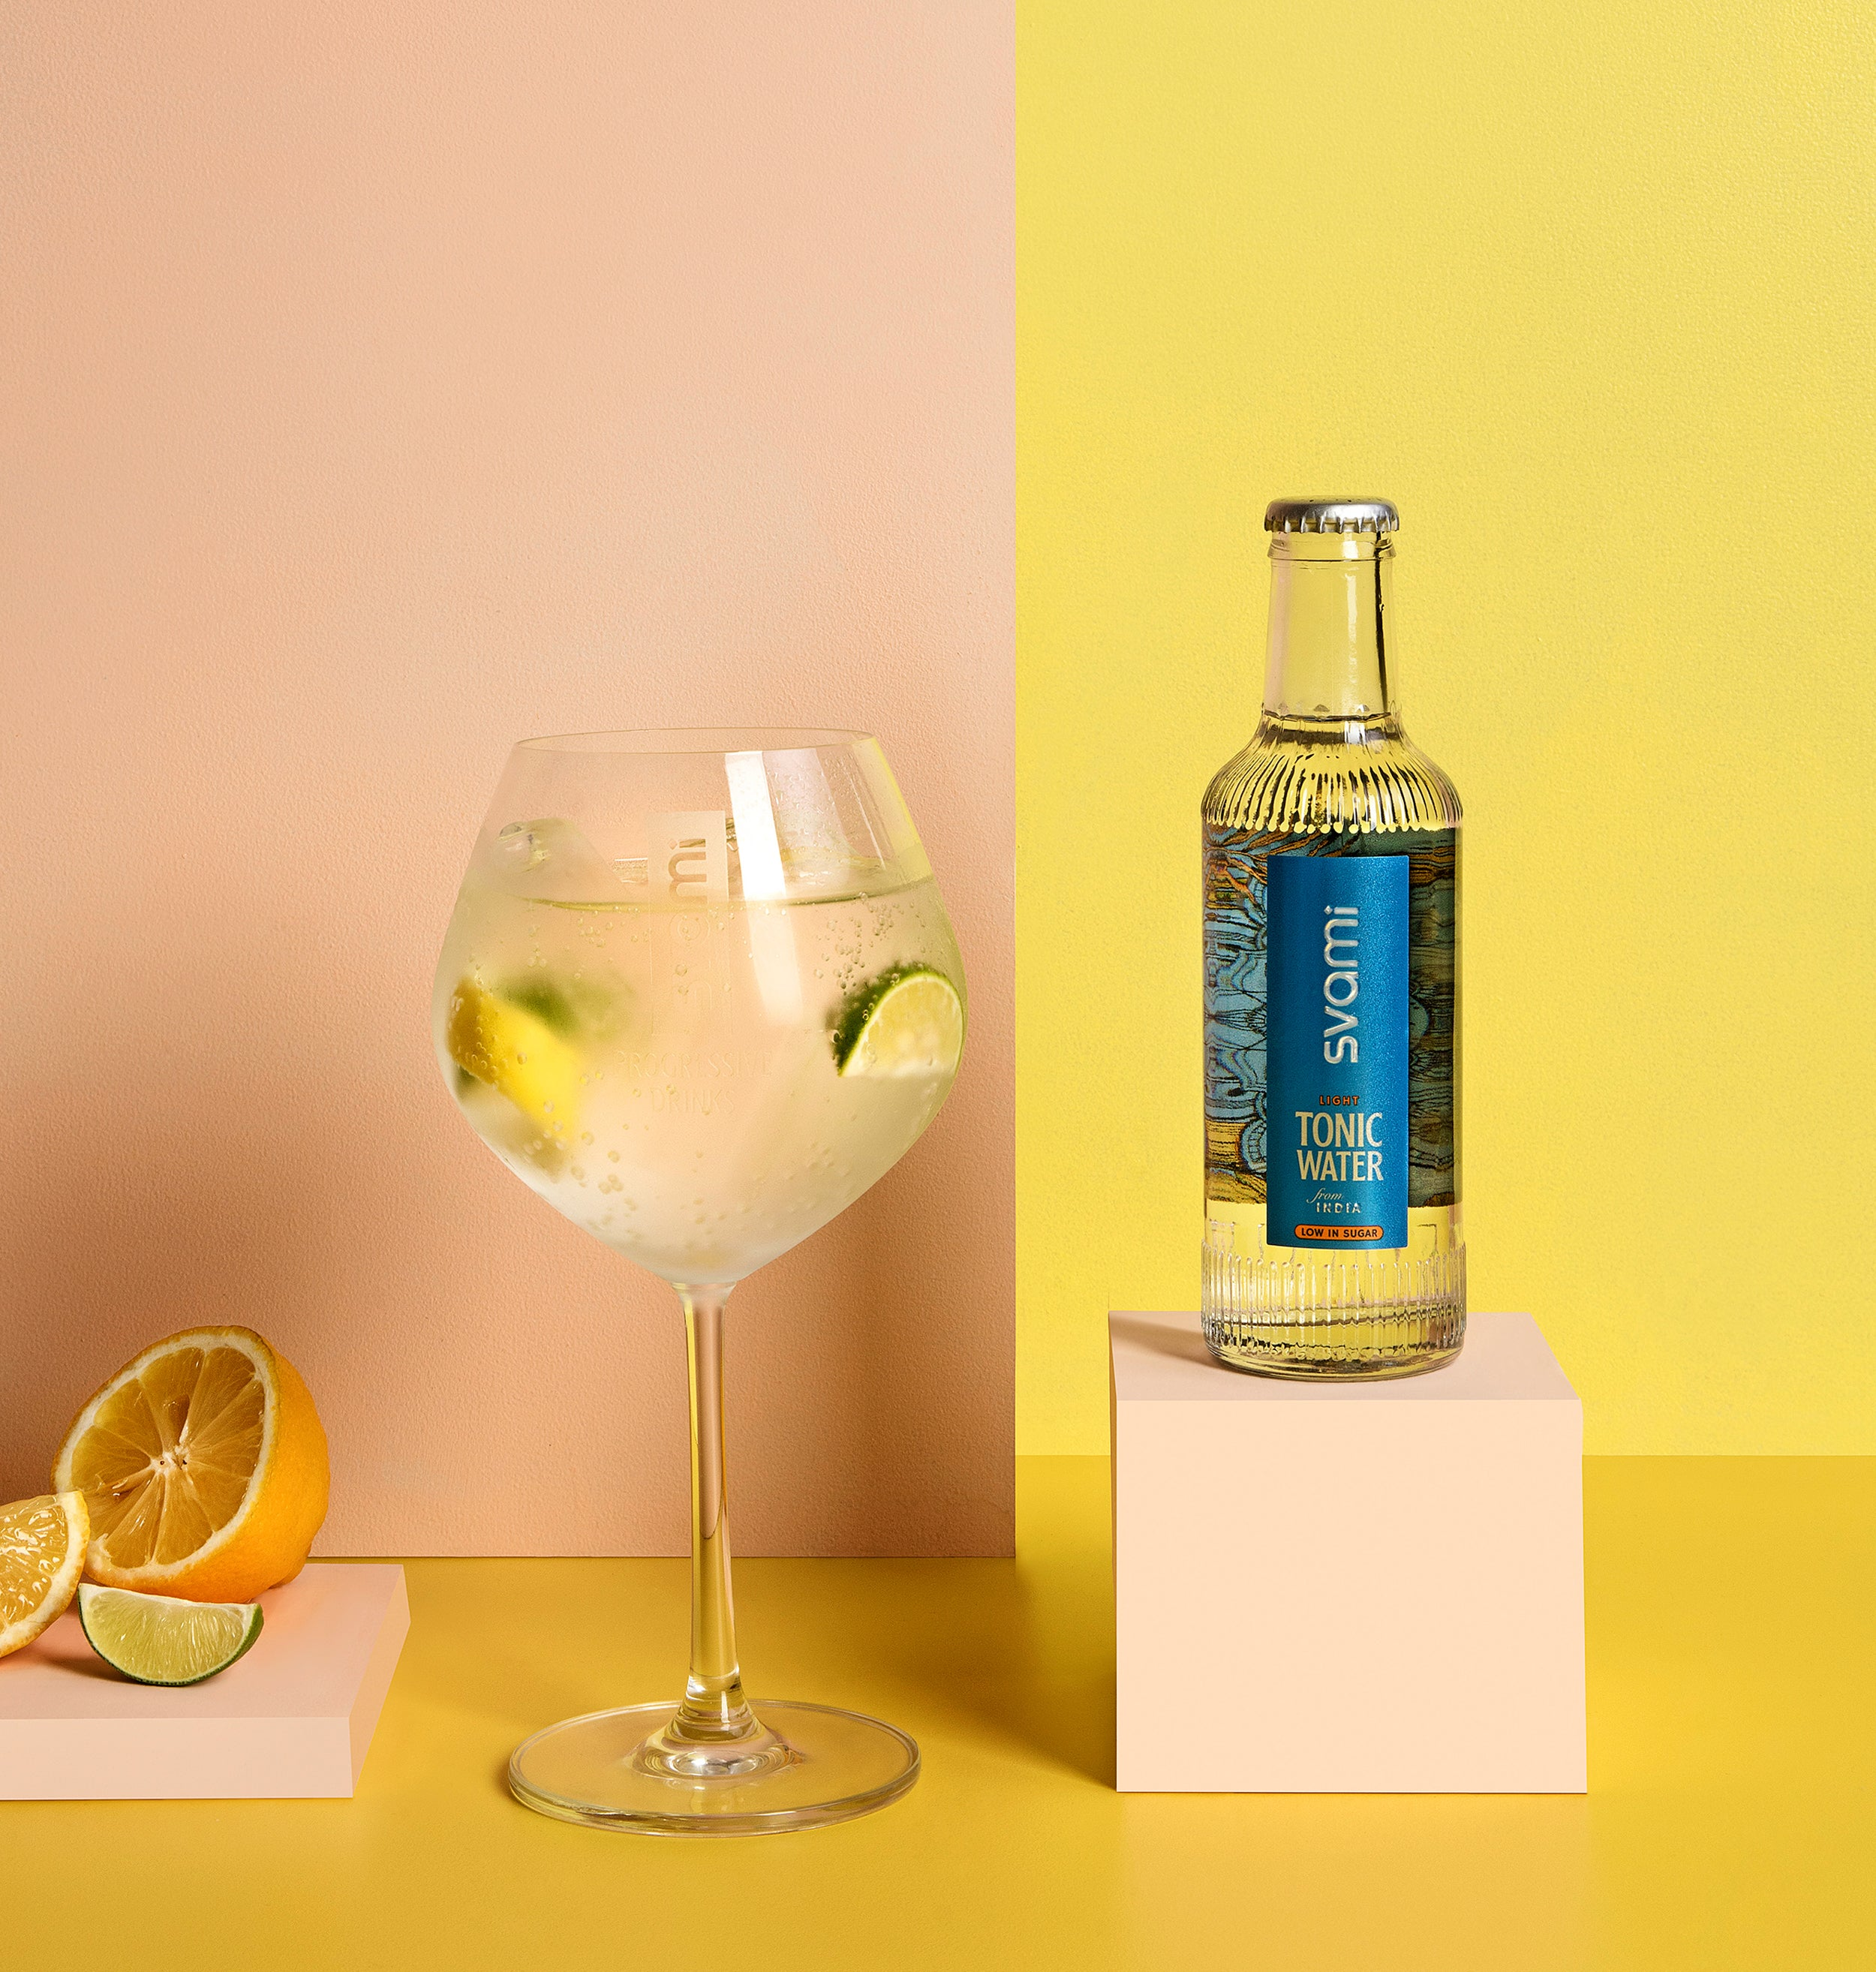 Svami Light Tonic Water